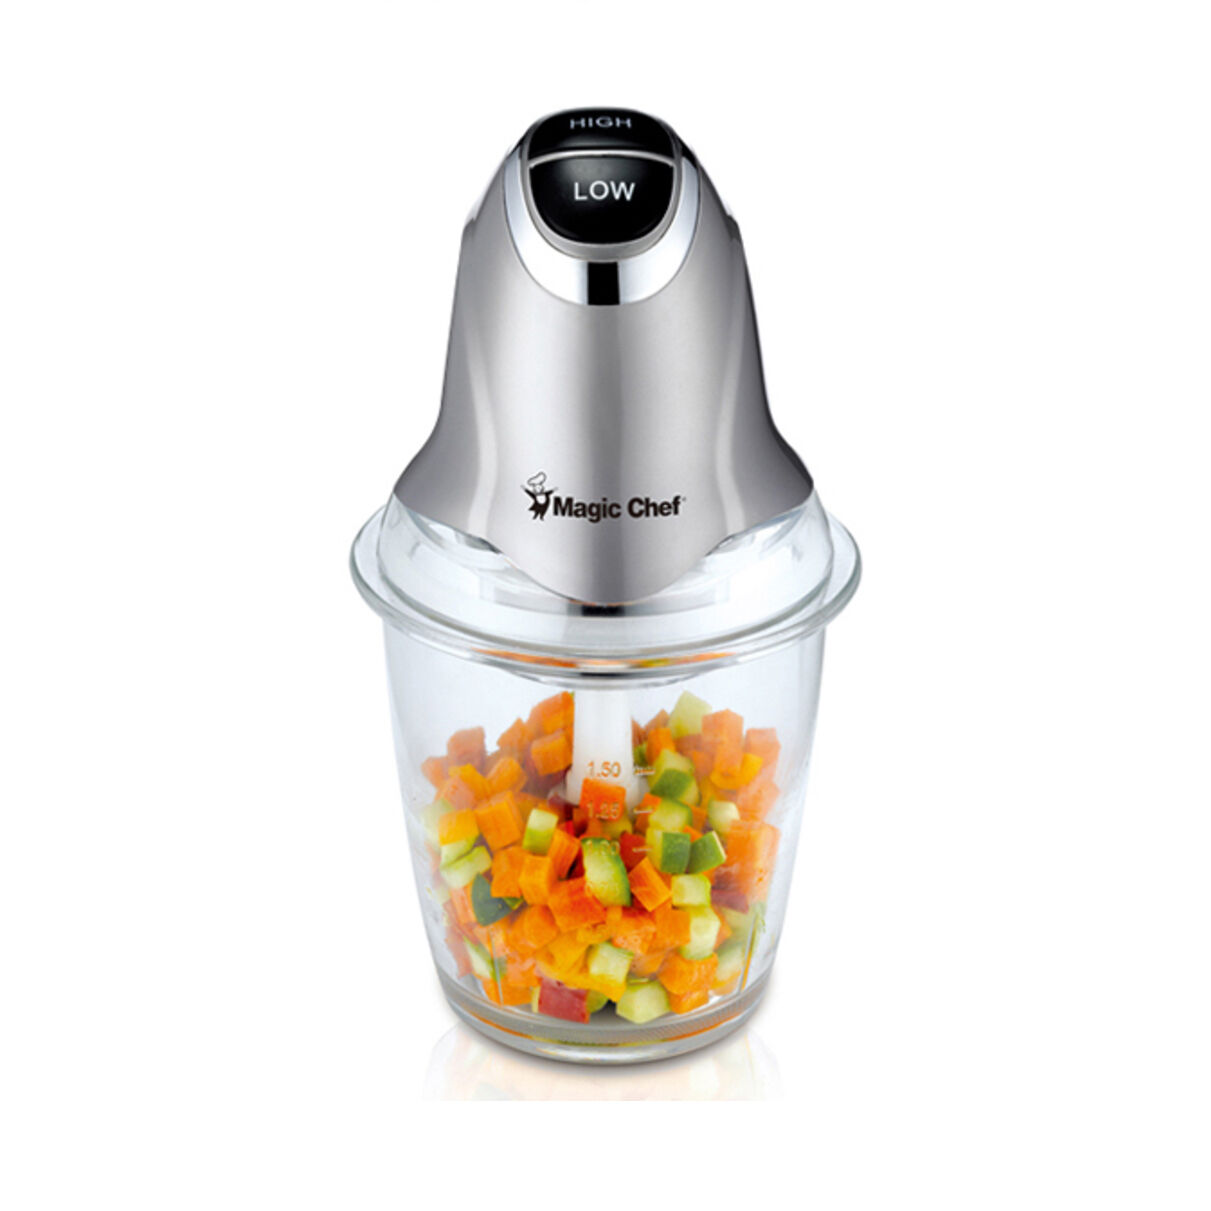 Magic Chef Electric Multi Food Processor Chopper Vegetable Meat Fruit Slicer